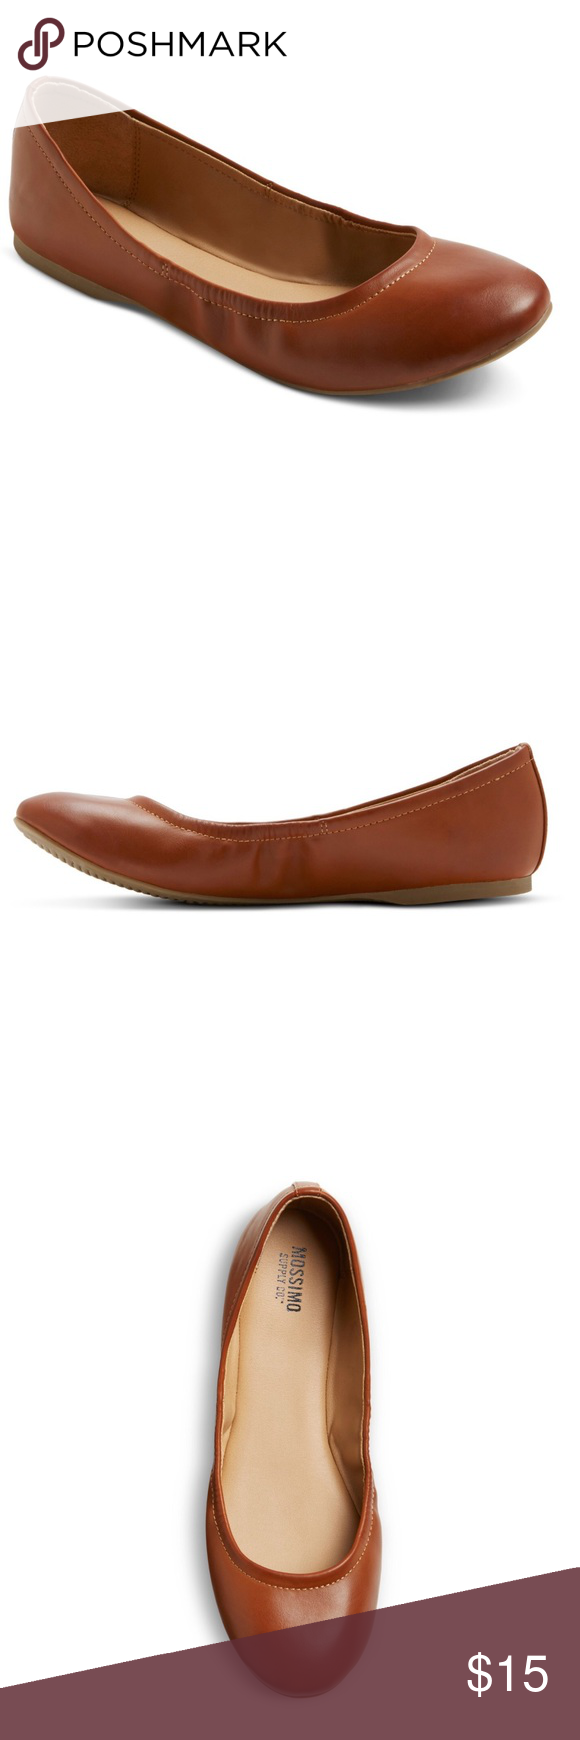 b18c1136ee10 WOMEN s Ona wide width ballet flats Mossimo Cognac Round-toed ballet flat  Luxe faux leather upper Convenient slip-on styling Cushioned insole